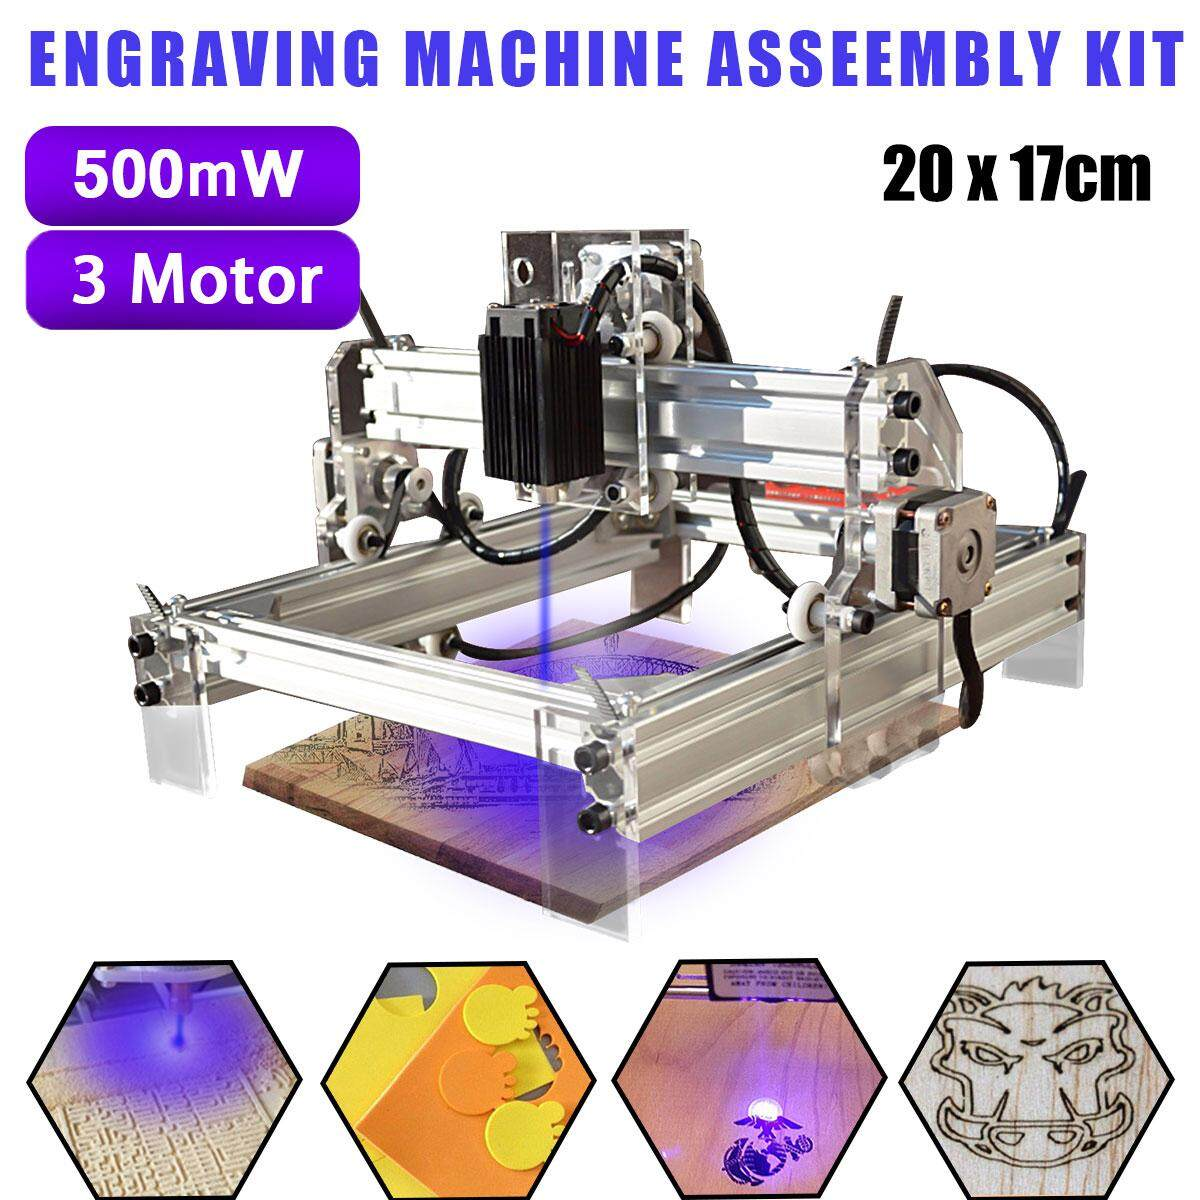 500mw Desktop Laser Engraving Engraver Machine Kit Diy Cutter Printer 20x17cm - Intl.